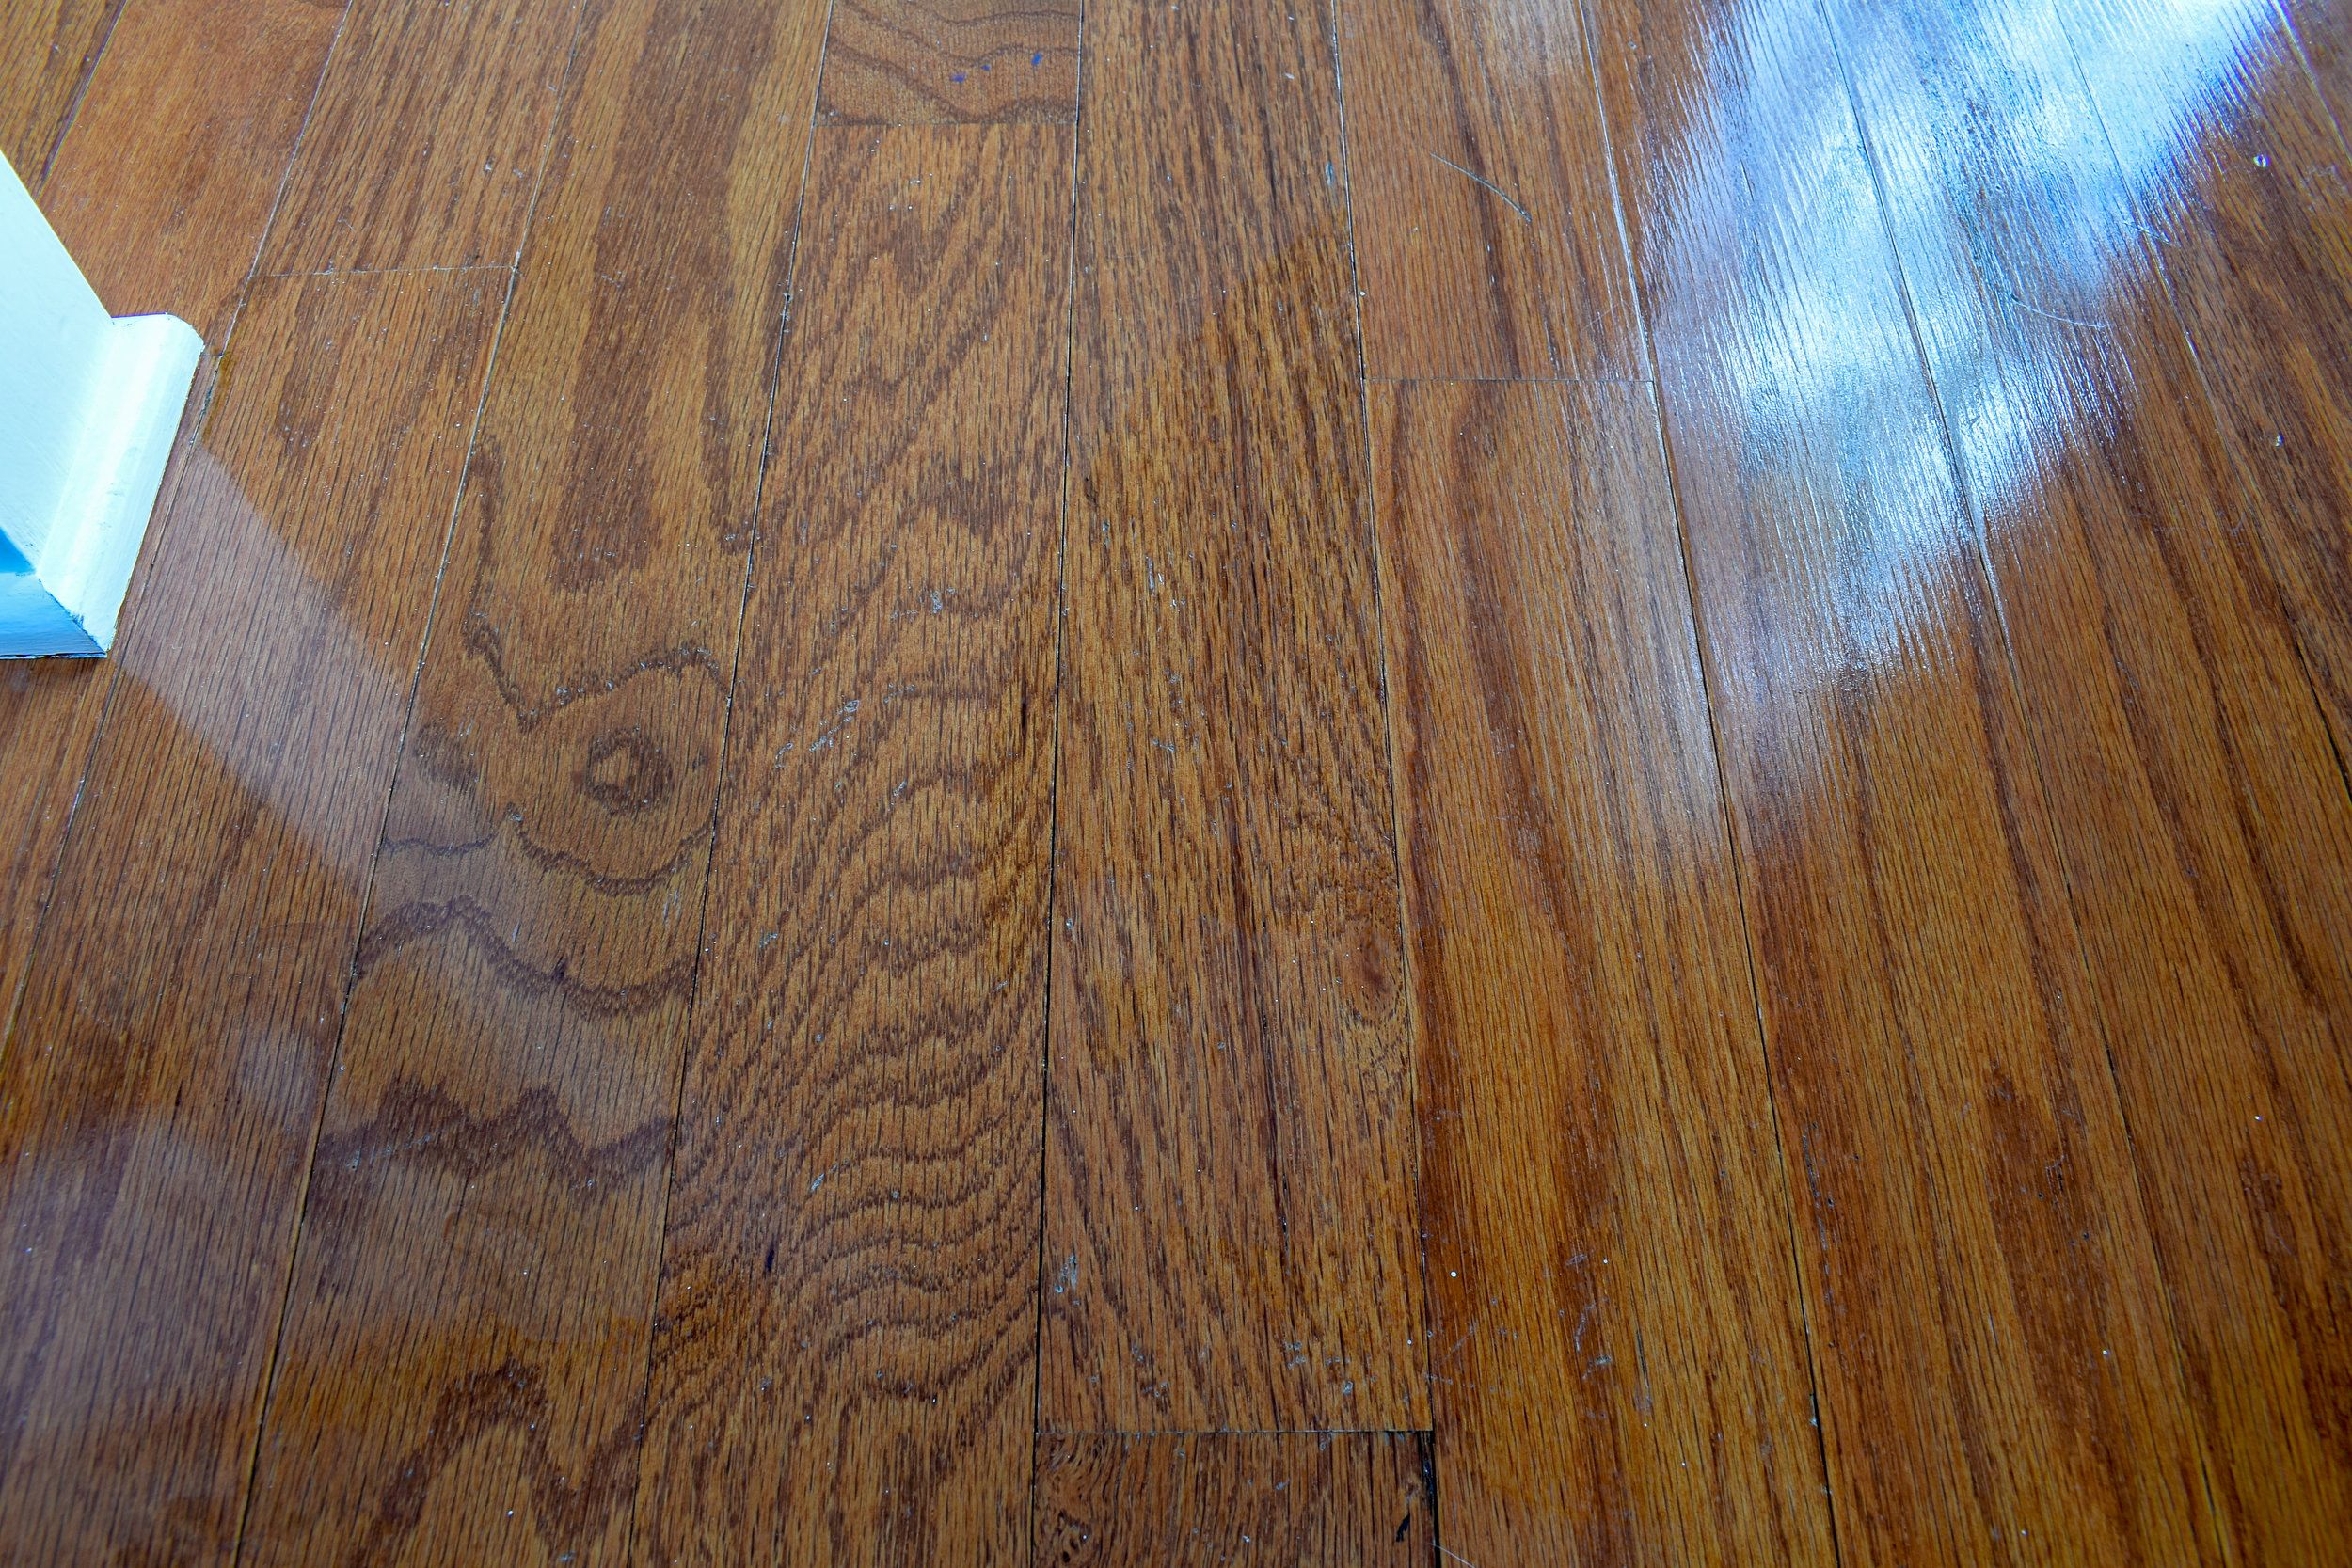 How To Create An Antique Looking Floor Using Newly Sawn Affordable Wide Plank Pine Sustainably Harv Wood Floors Wide Plank House Flooring Wide Plank Flooring